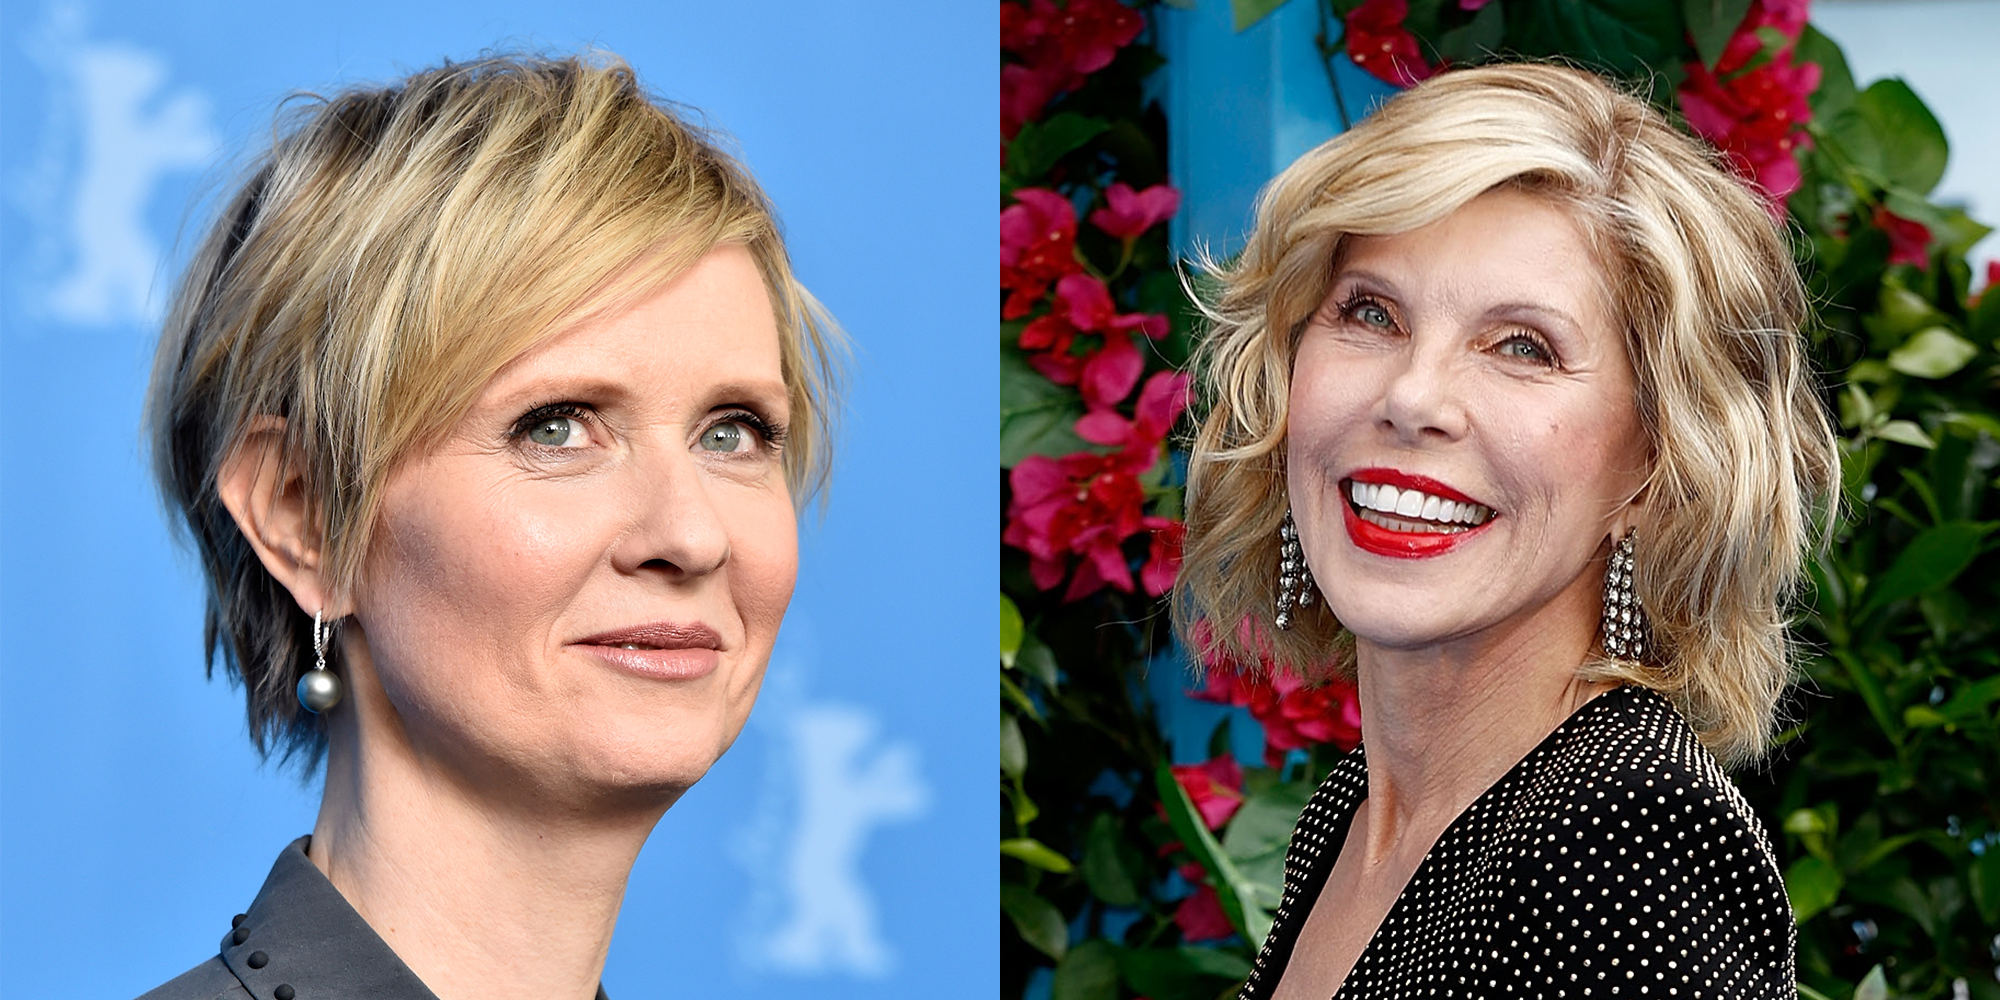 Cynthia Nixon and Christine Baranski Will Star in HBO's The Gilded Age